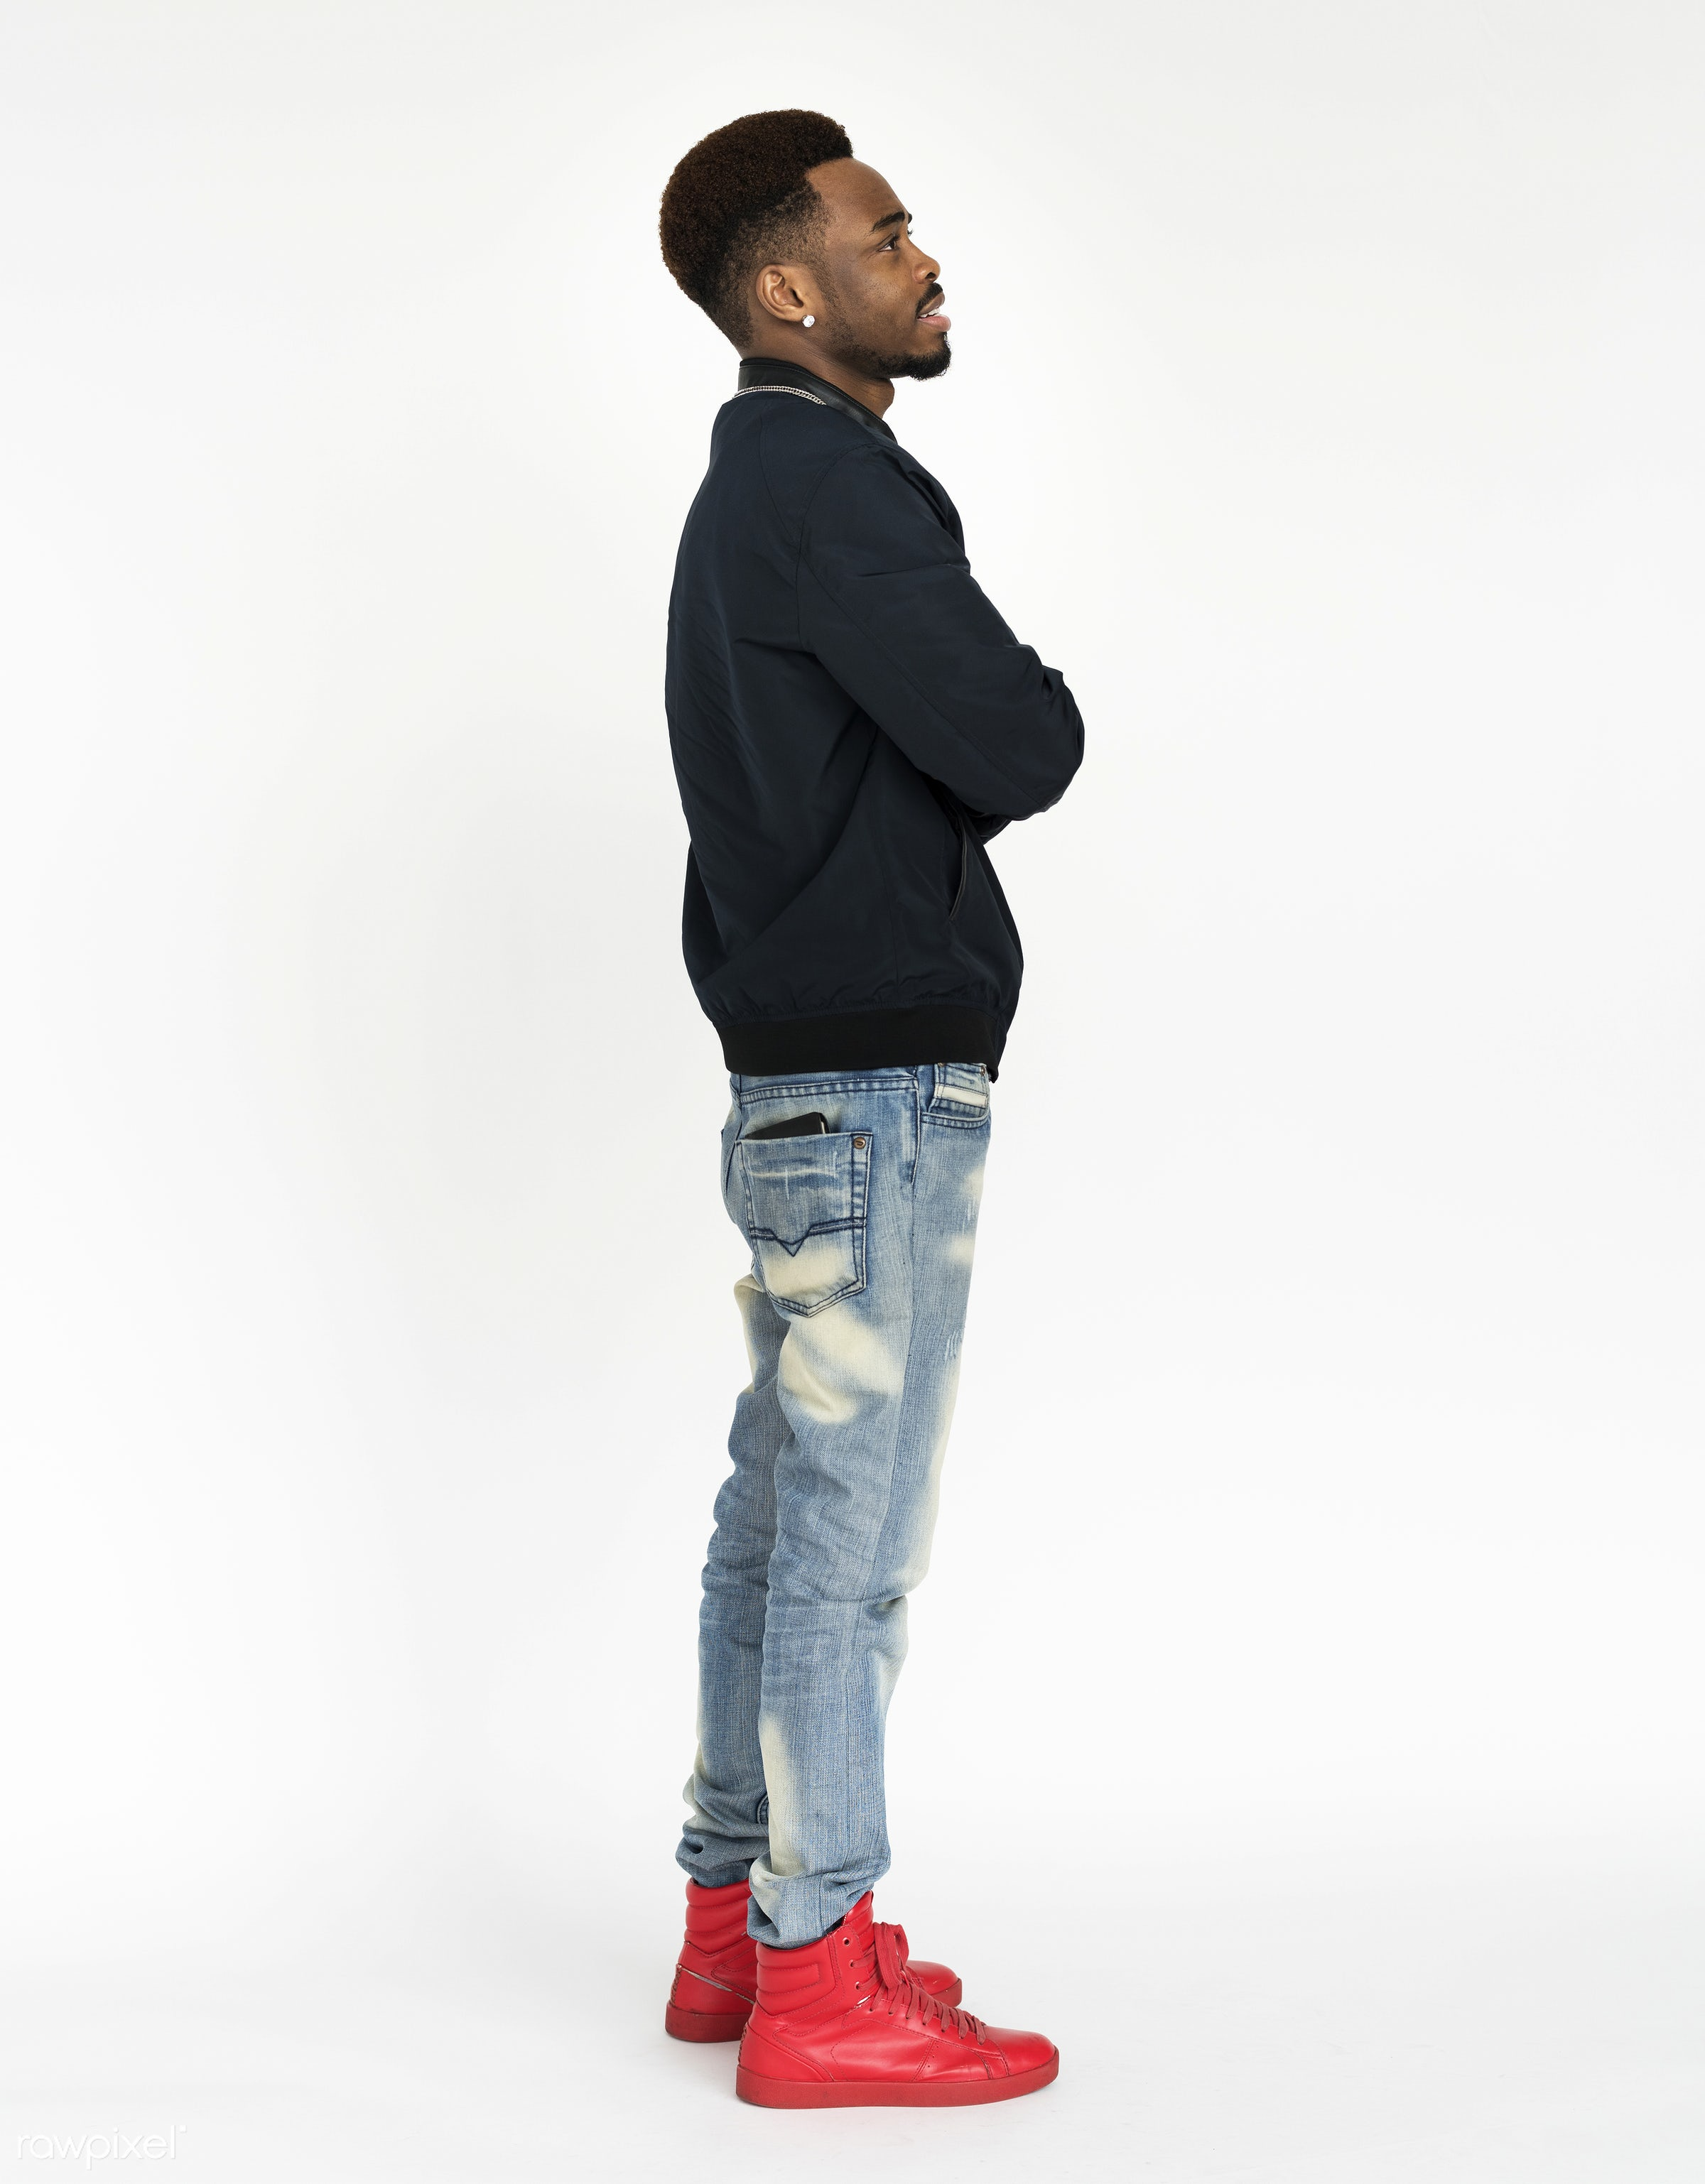 expression, studio, fashion, model, person, full length, isolated on white, hip hop, trendy, race, people, style, lifestyle...